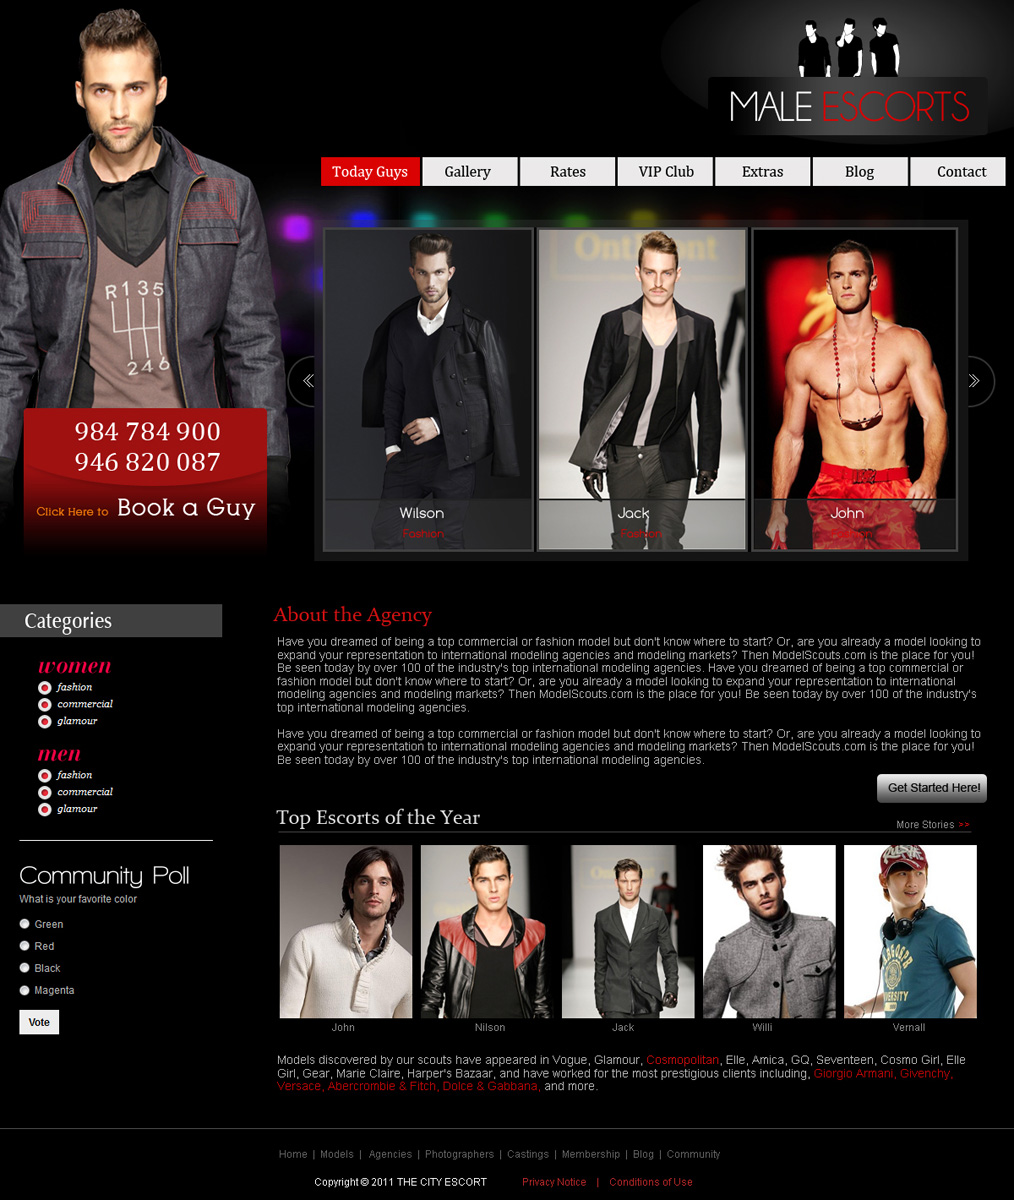 gay escort service website shemalewiki